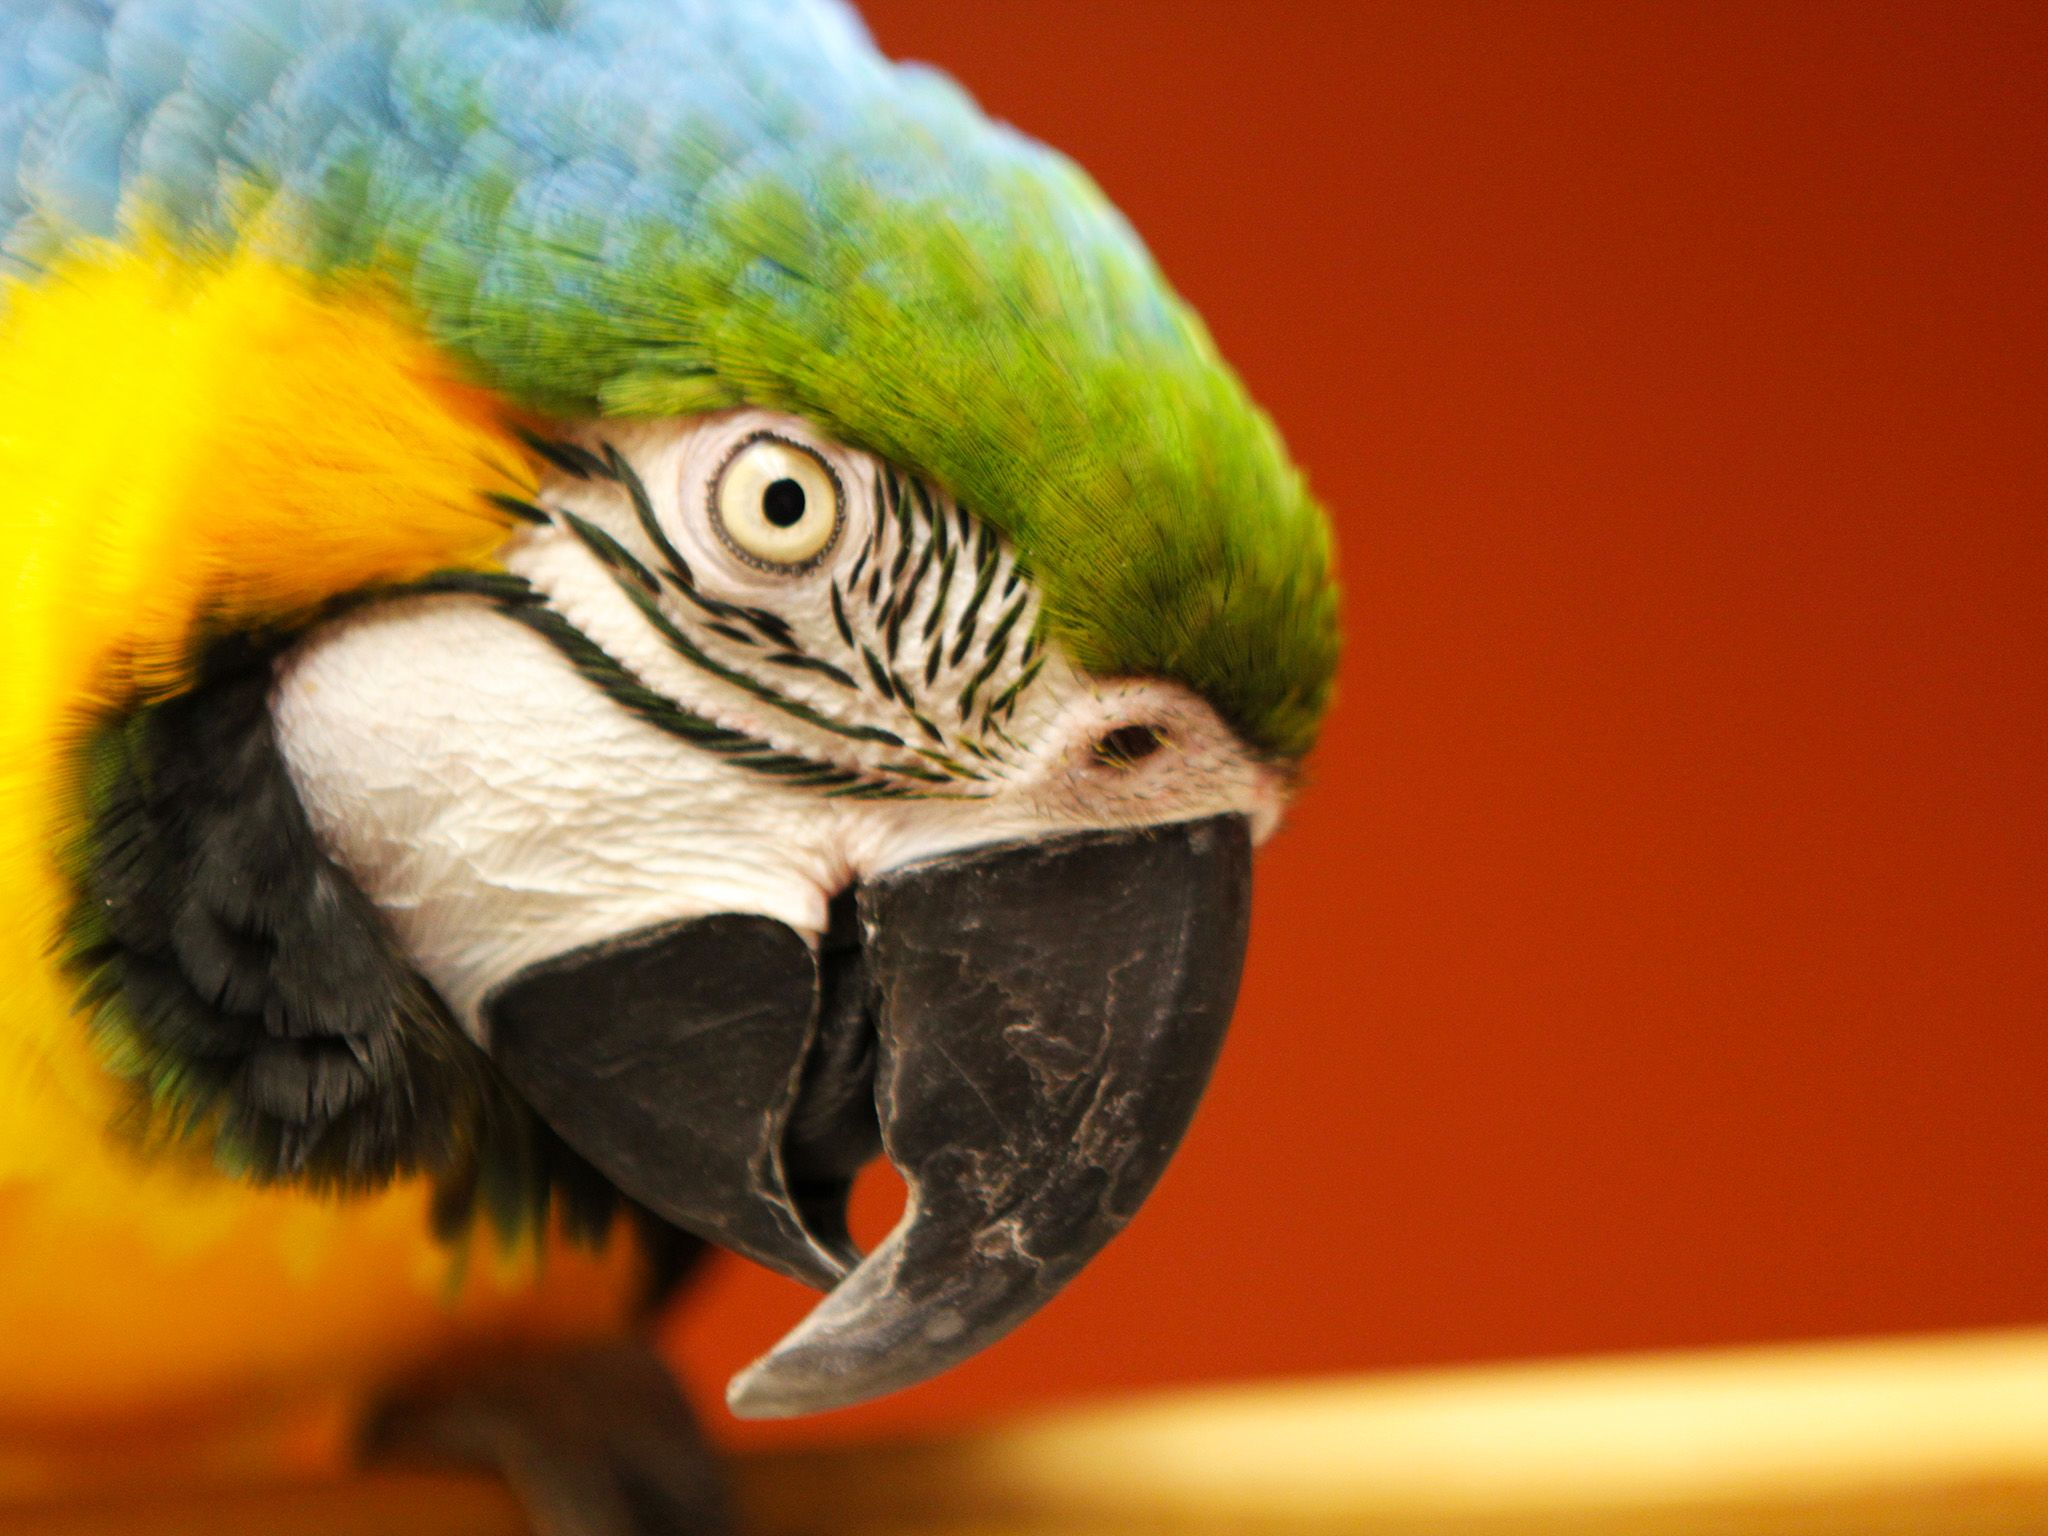 Dr. Kelleher's blue and gold macaw, Xander, sitting on a perch in the treatment room. This image ... [Photo of the day - October 2014]